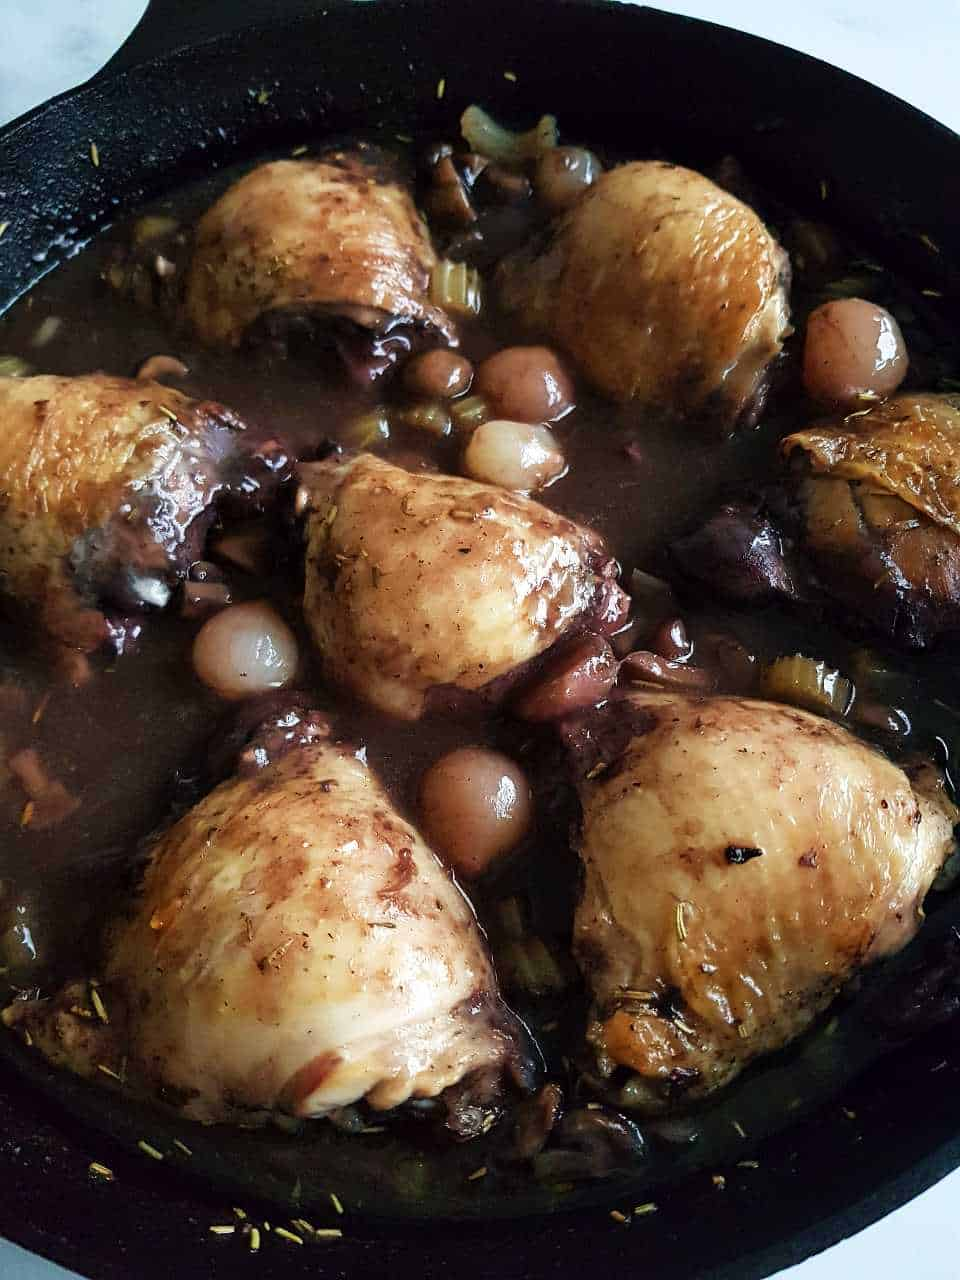 Coq au vin in a cast iron pan.